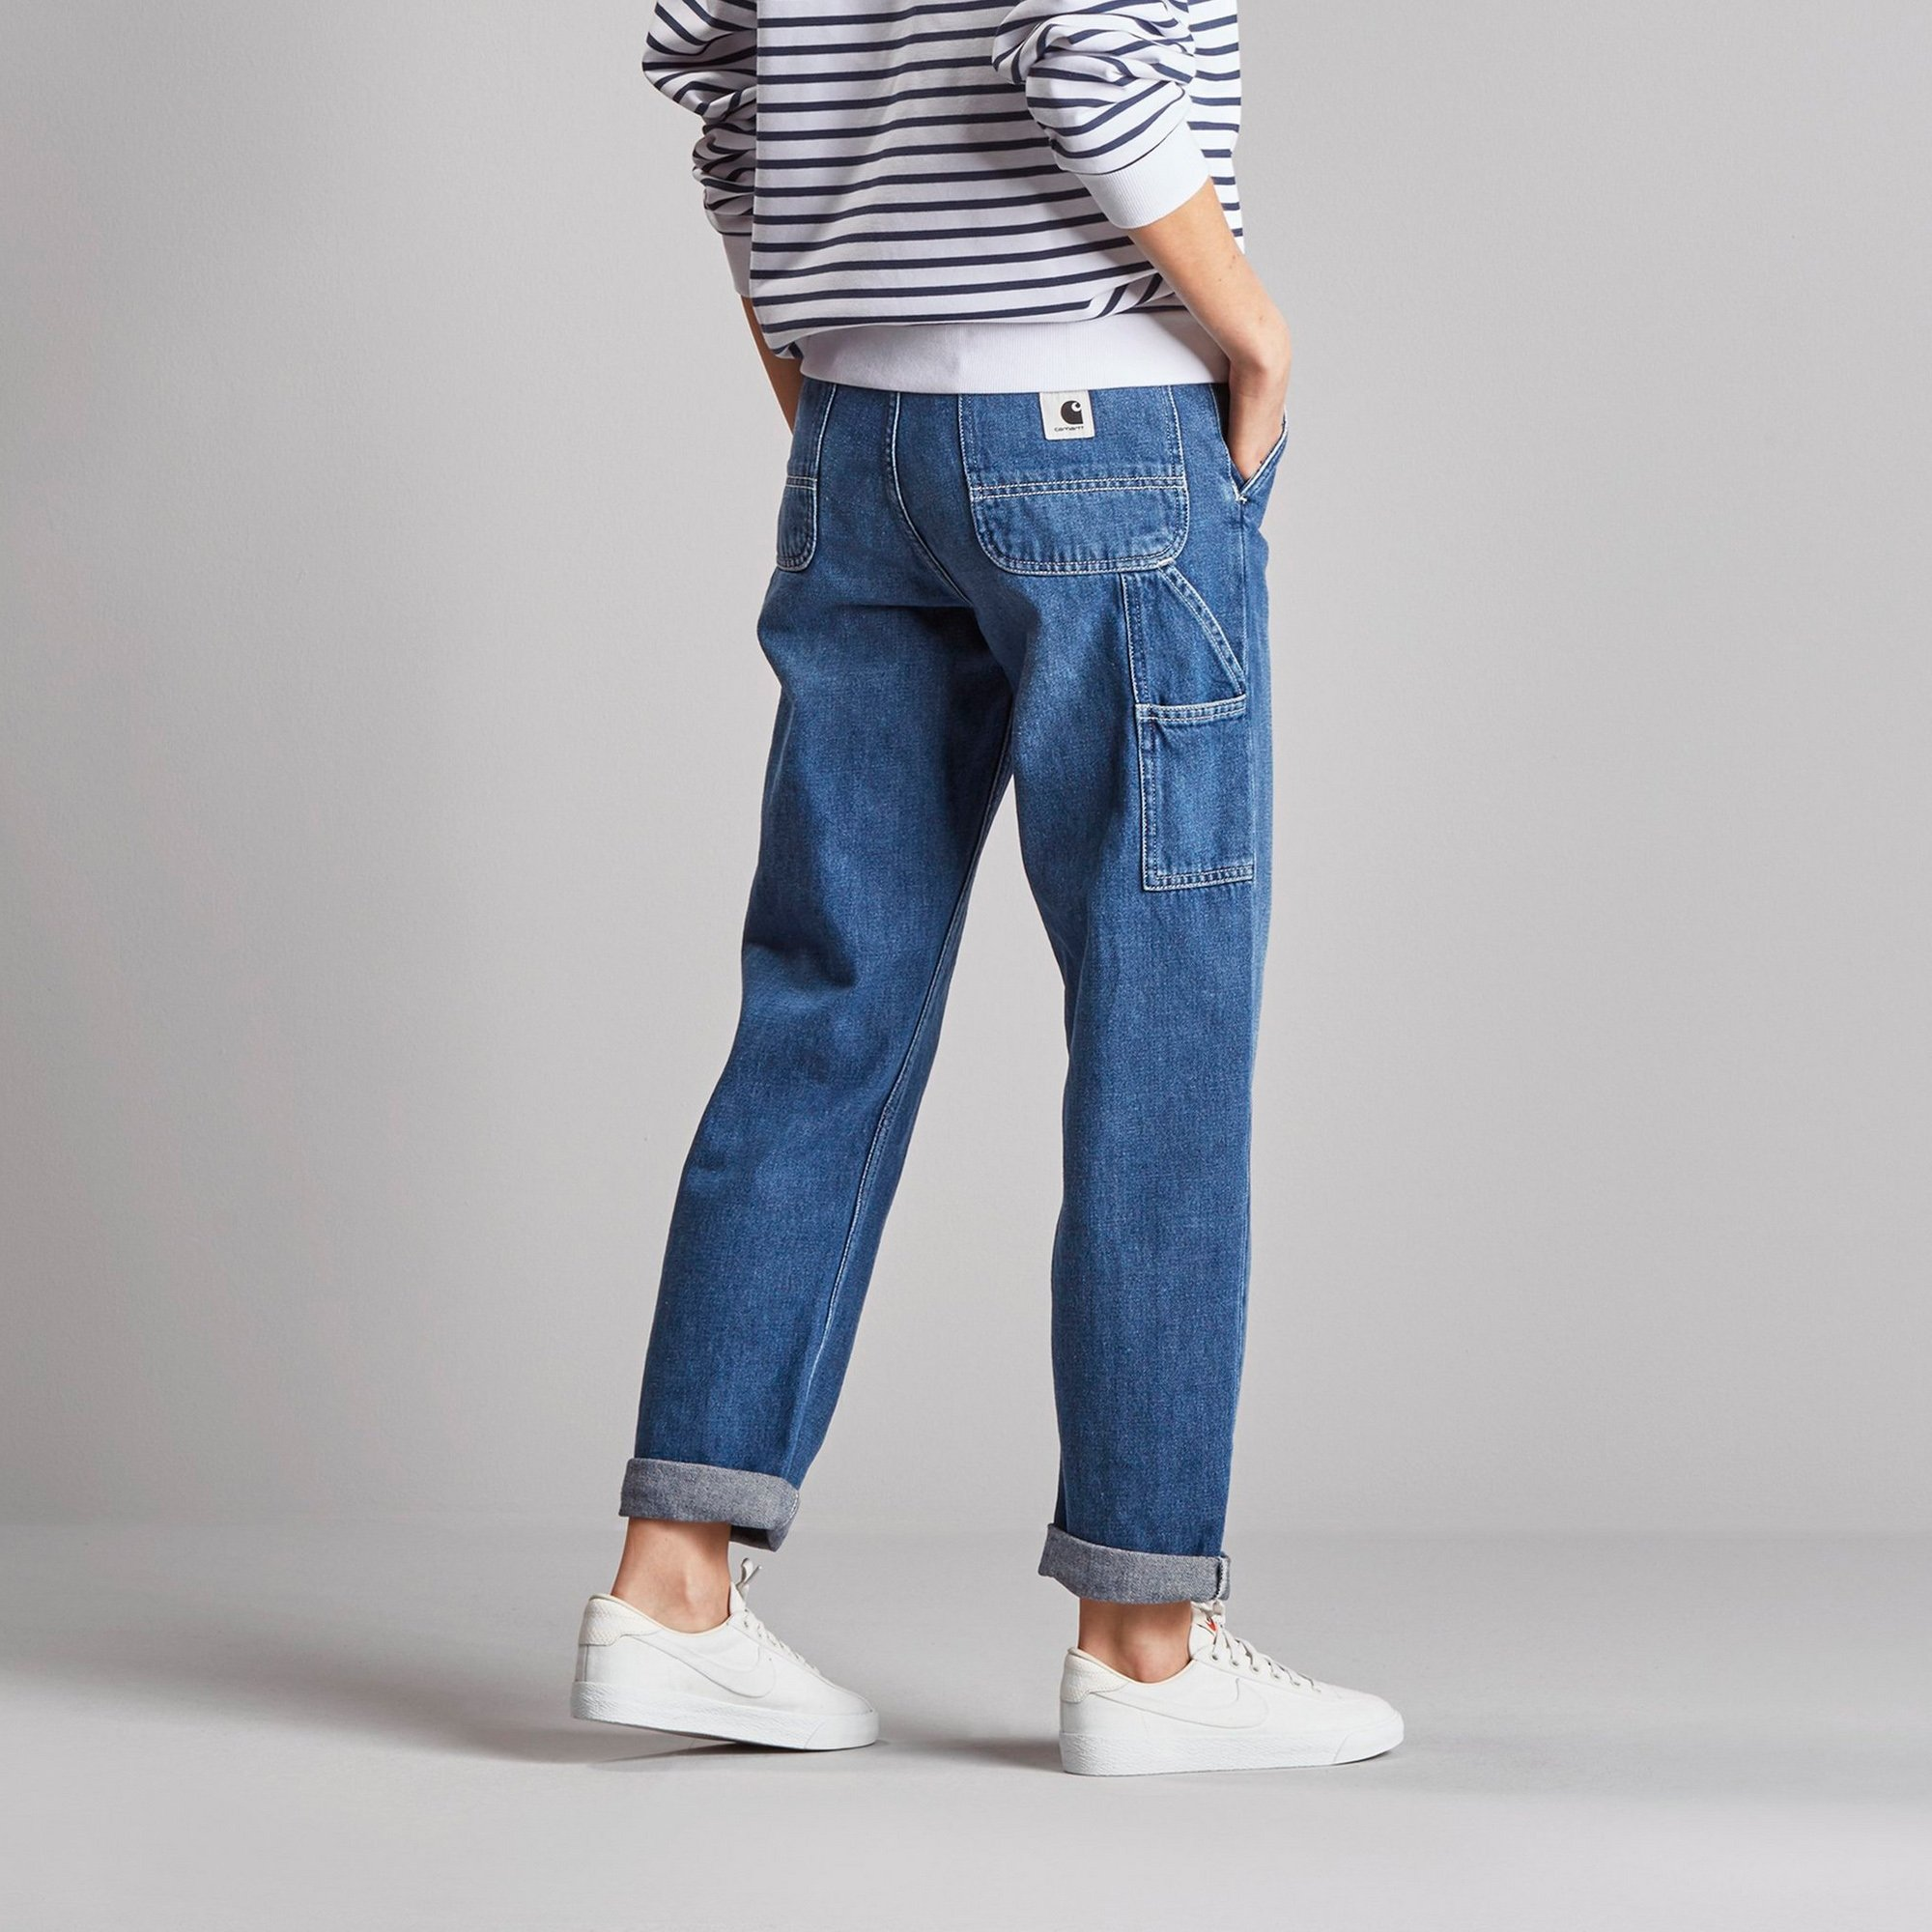 Our Fashion Crystal Ball Has Predicted These 7 Denim Trends For 2019 Fall Denim Trends Denim Trends Fall Denim